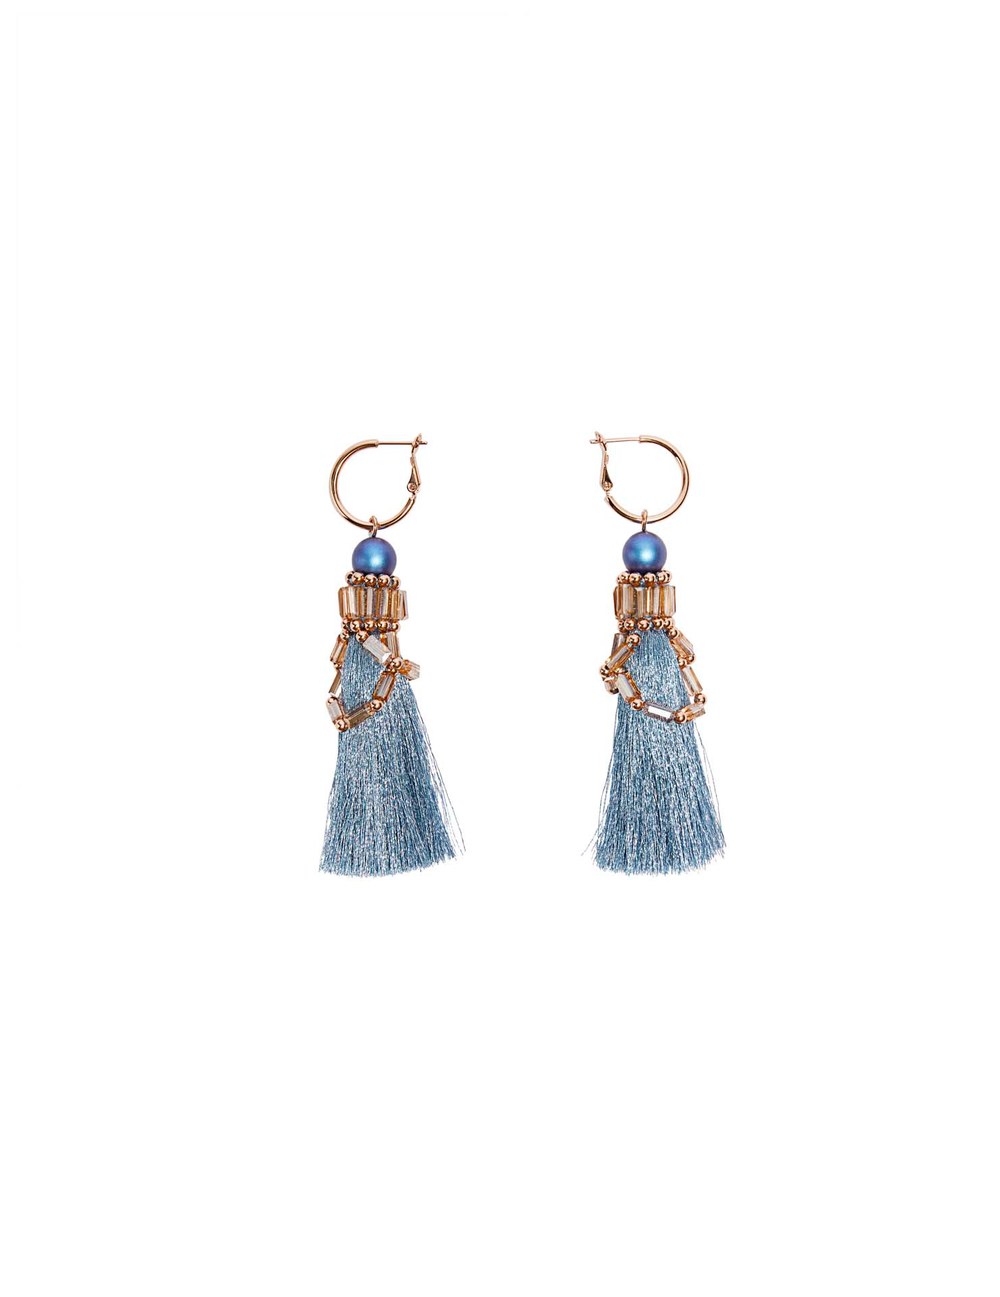 Lisboa Fringe Earrings